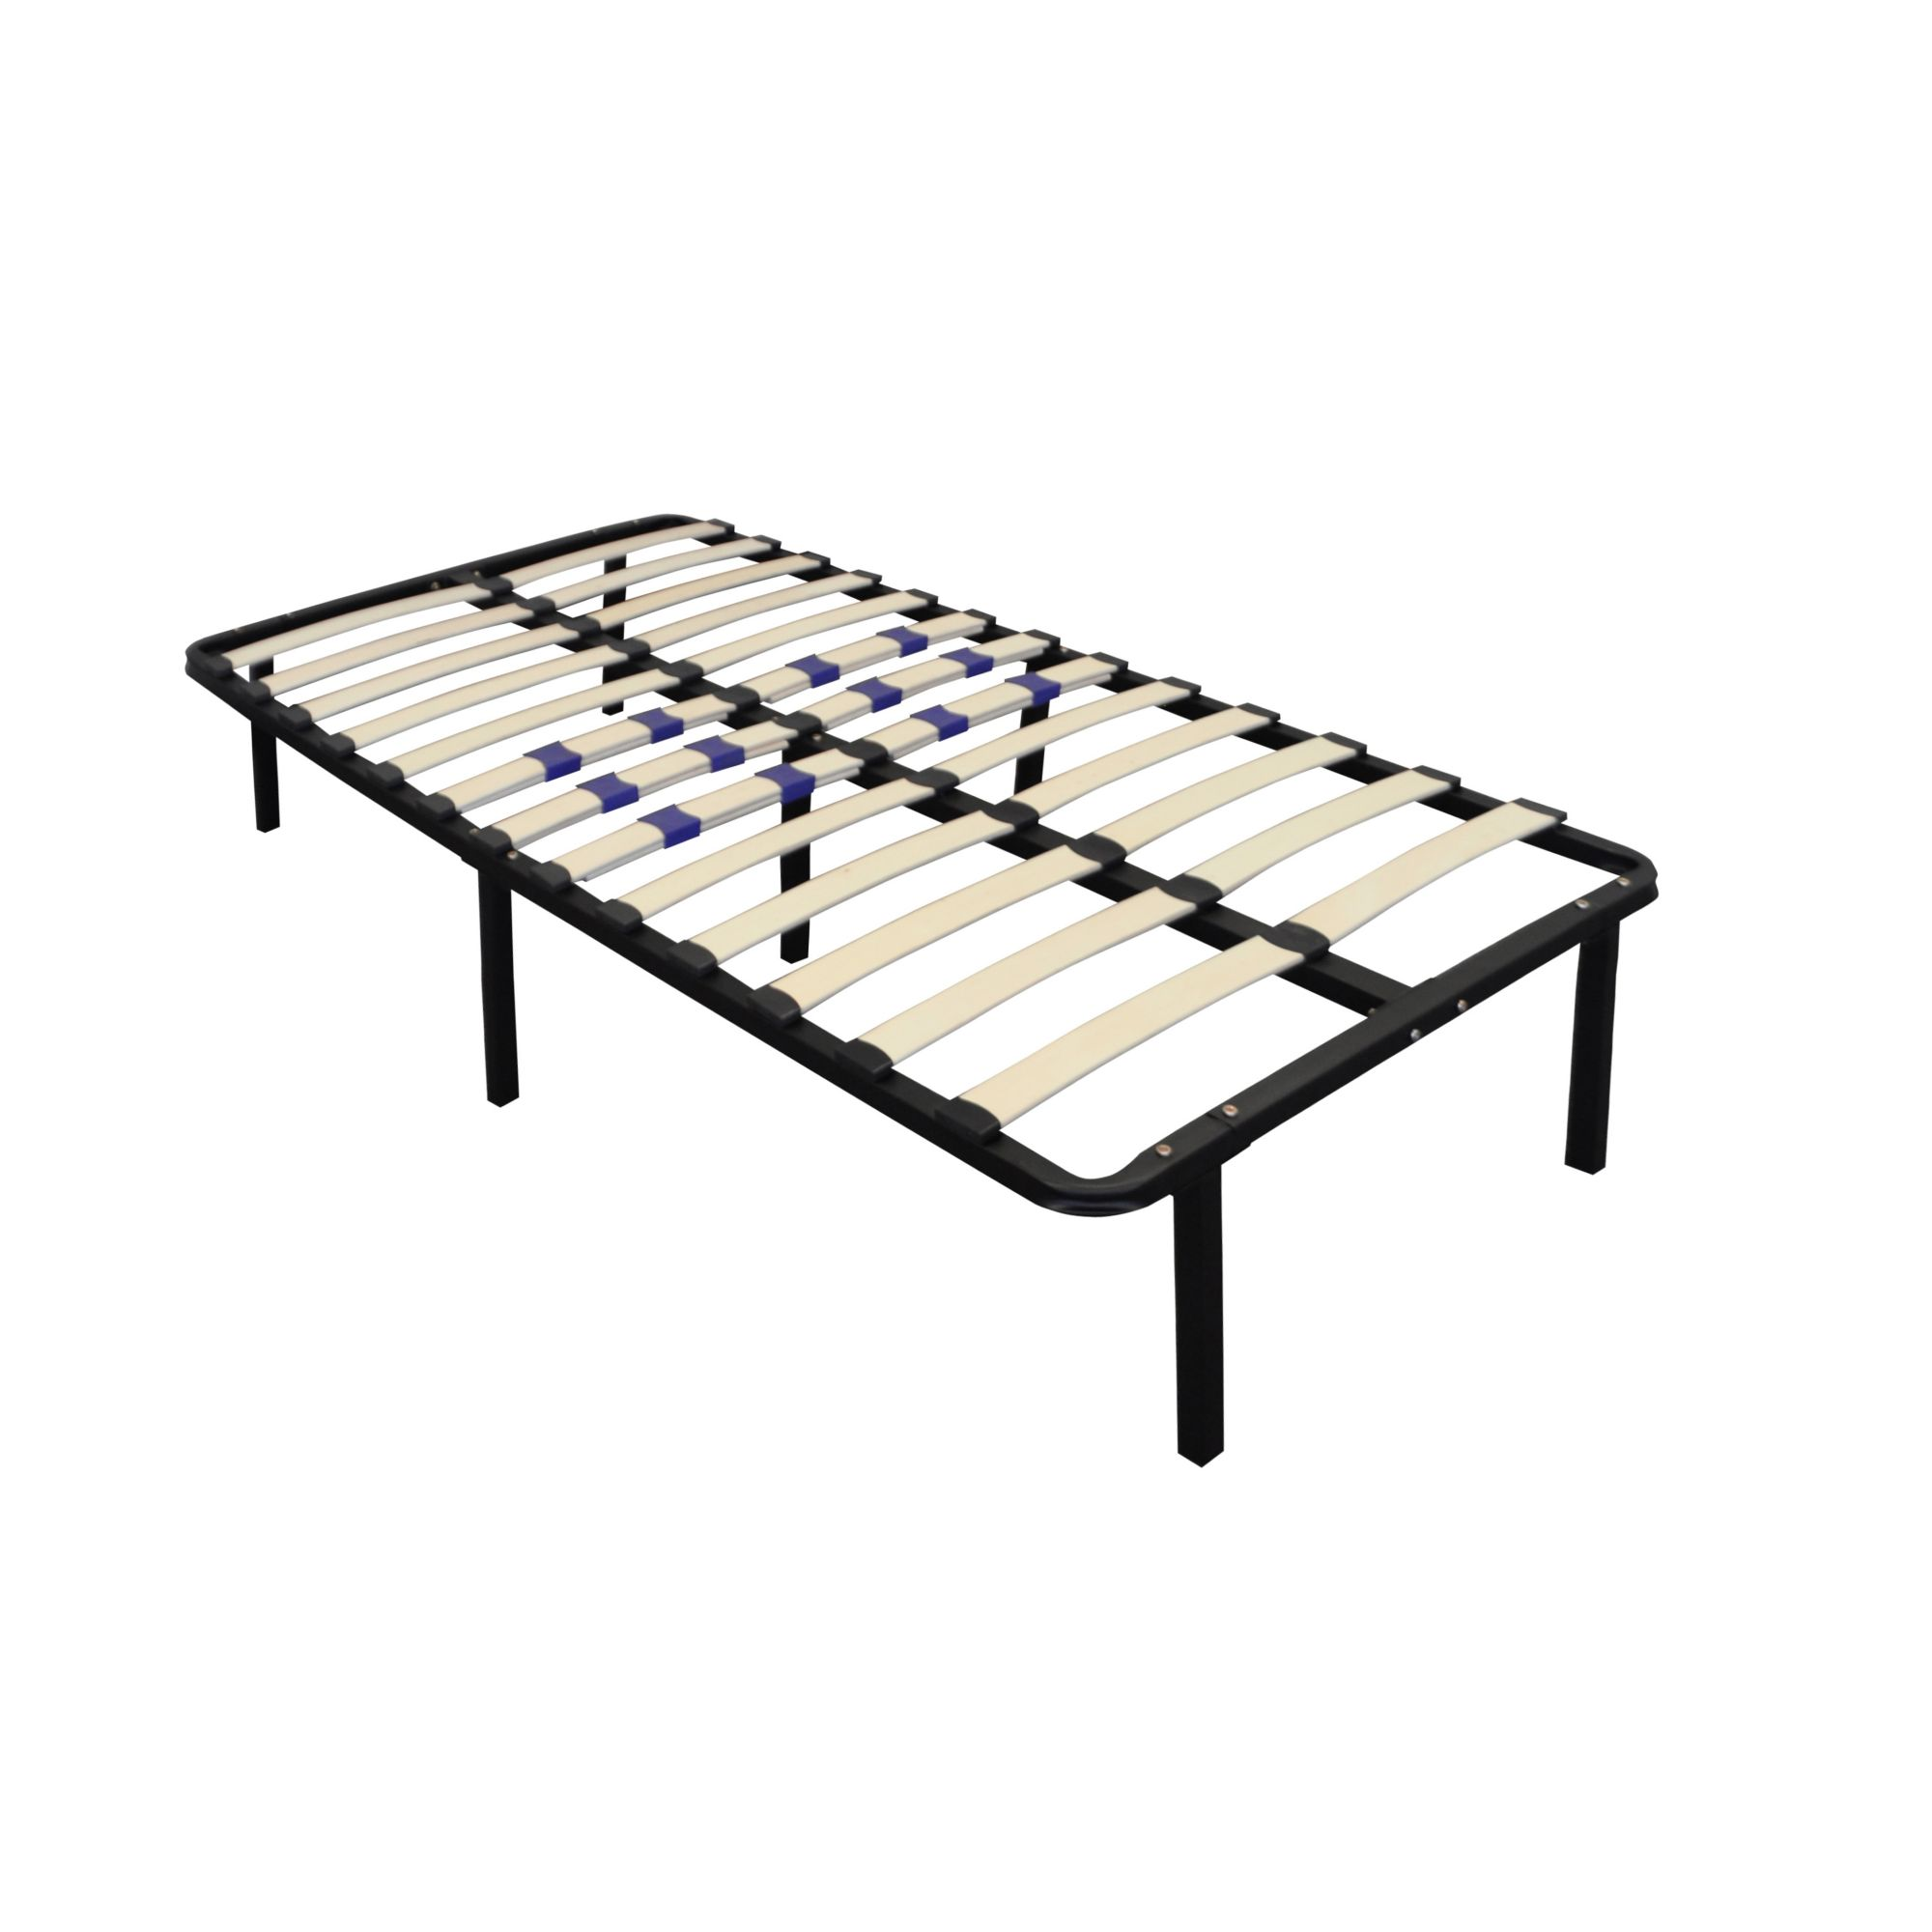 Image of: 14 Contour Rest Dream Support Modern Twin Size Bed Frame Bjs Wholesale Club